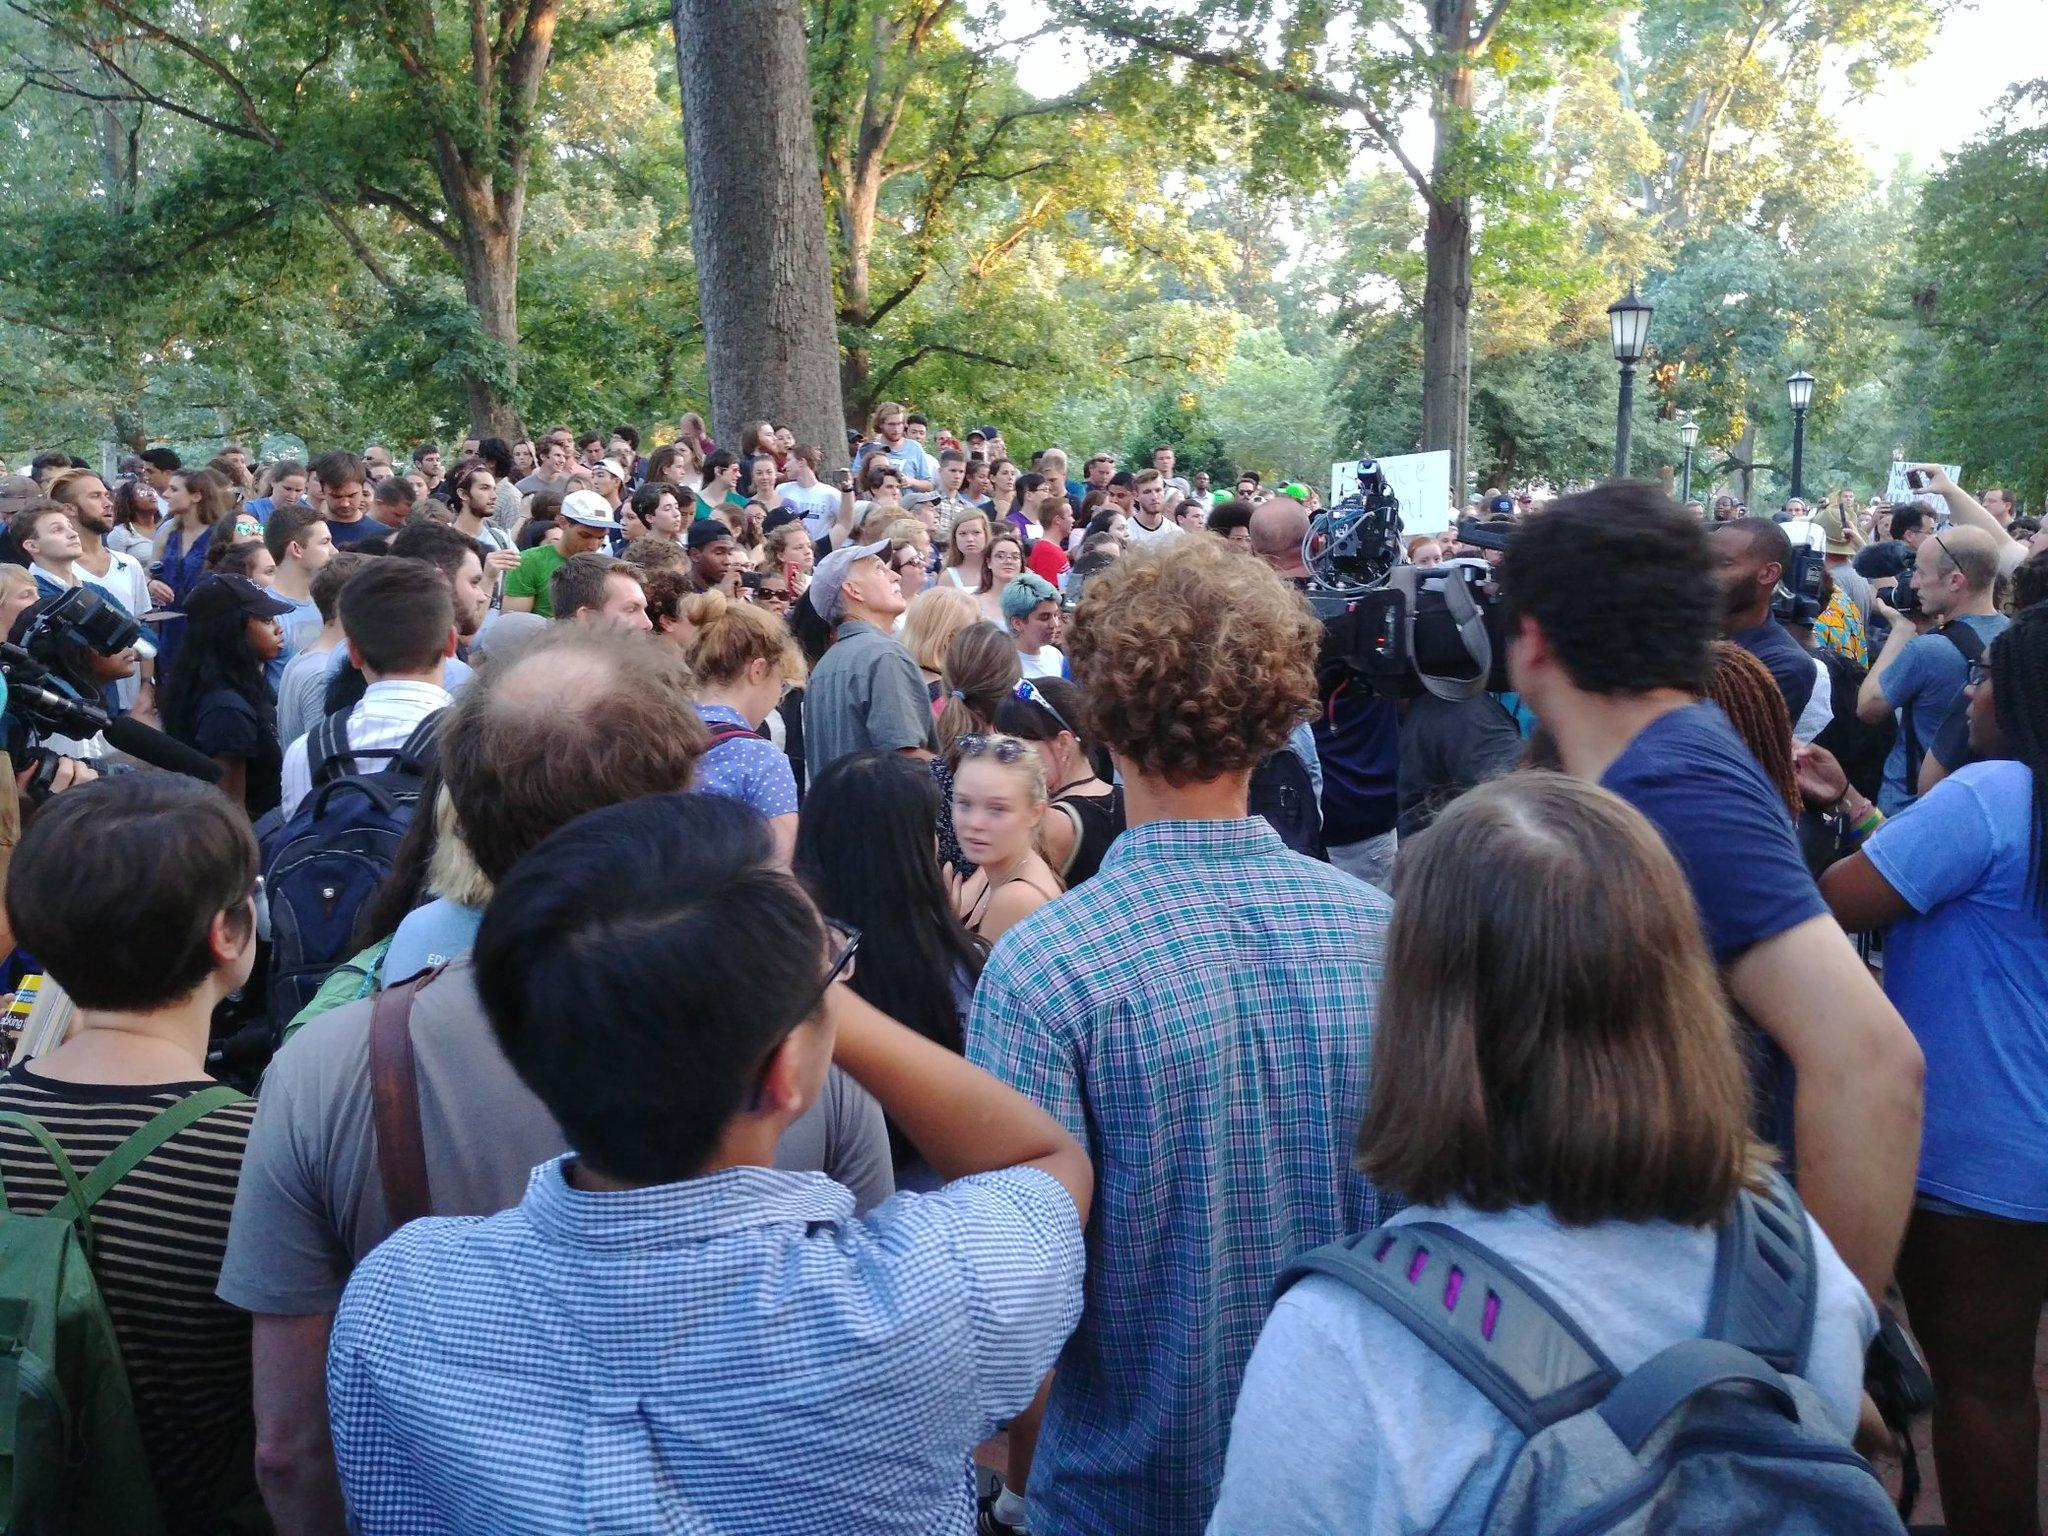 'Tear it down': Protesters gather at Silent Sam statue on UNC campus